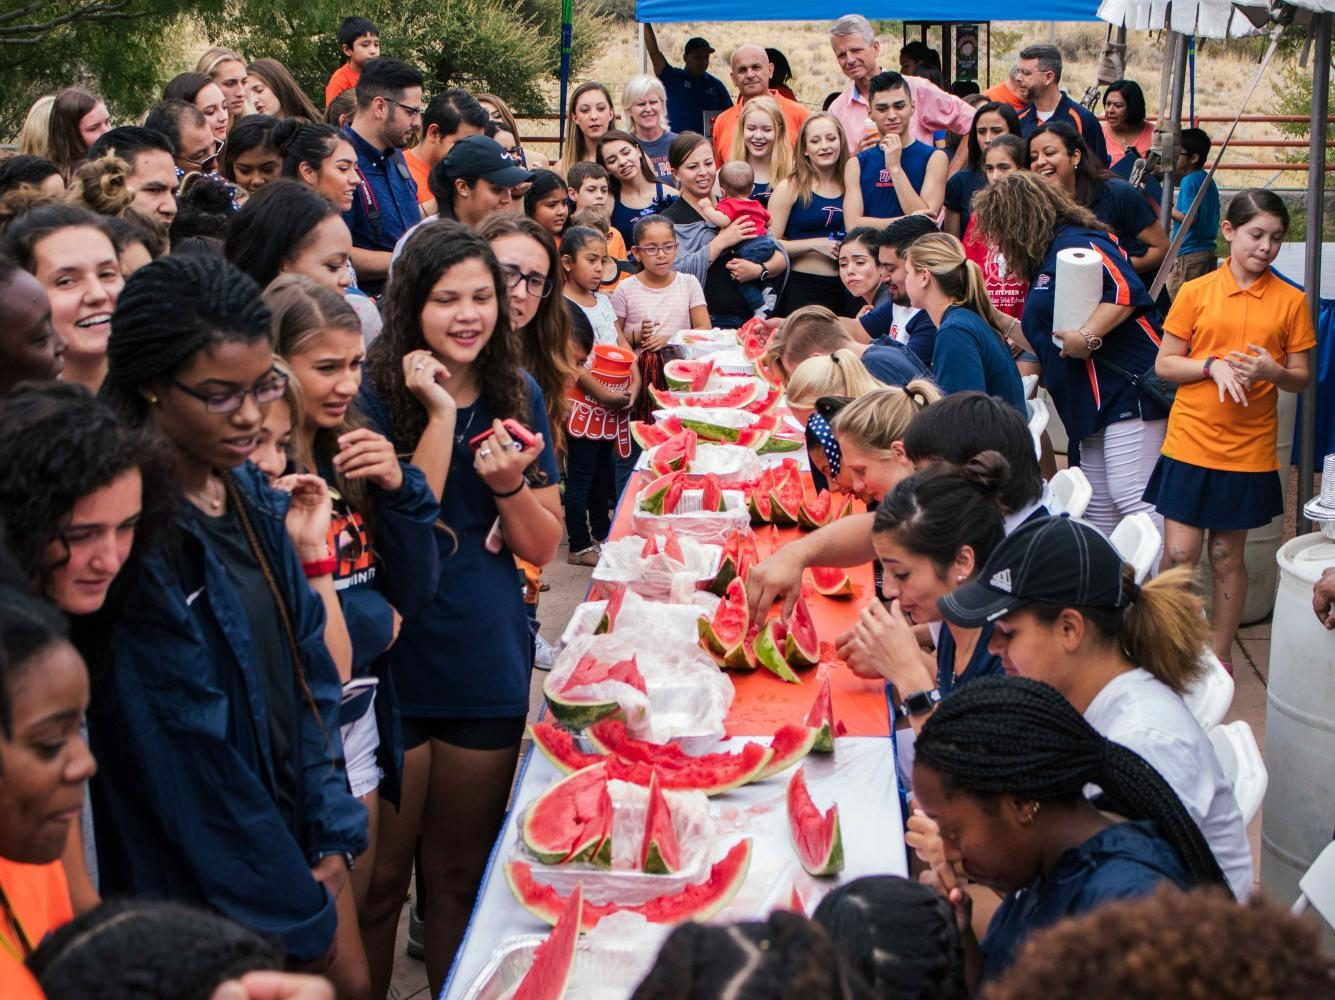 UTEP+students+took+part+in+a+watermelon+eating+contest.